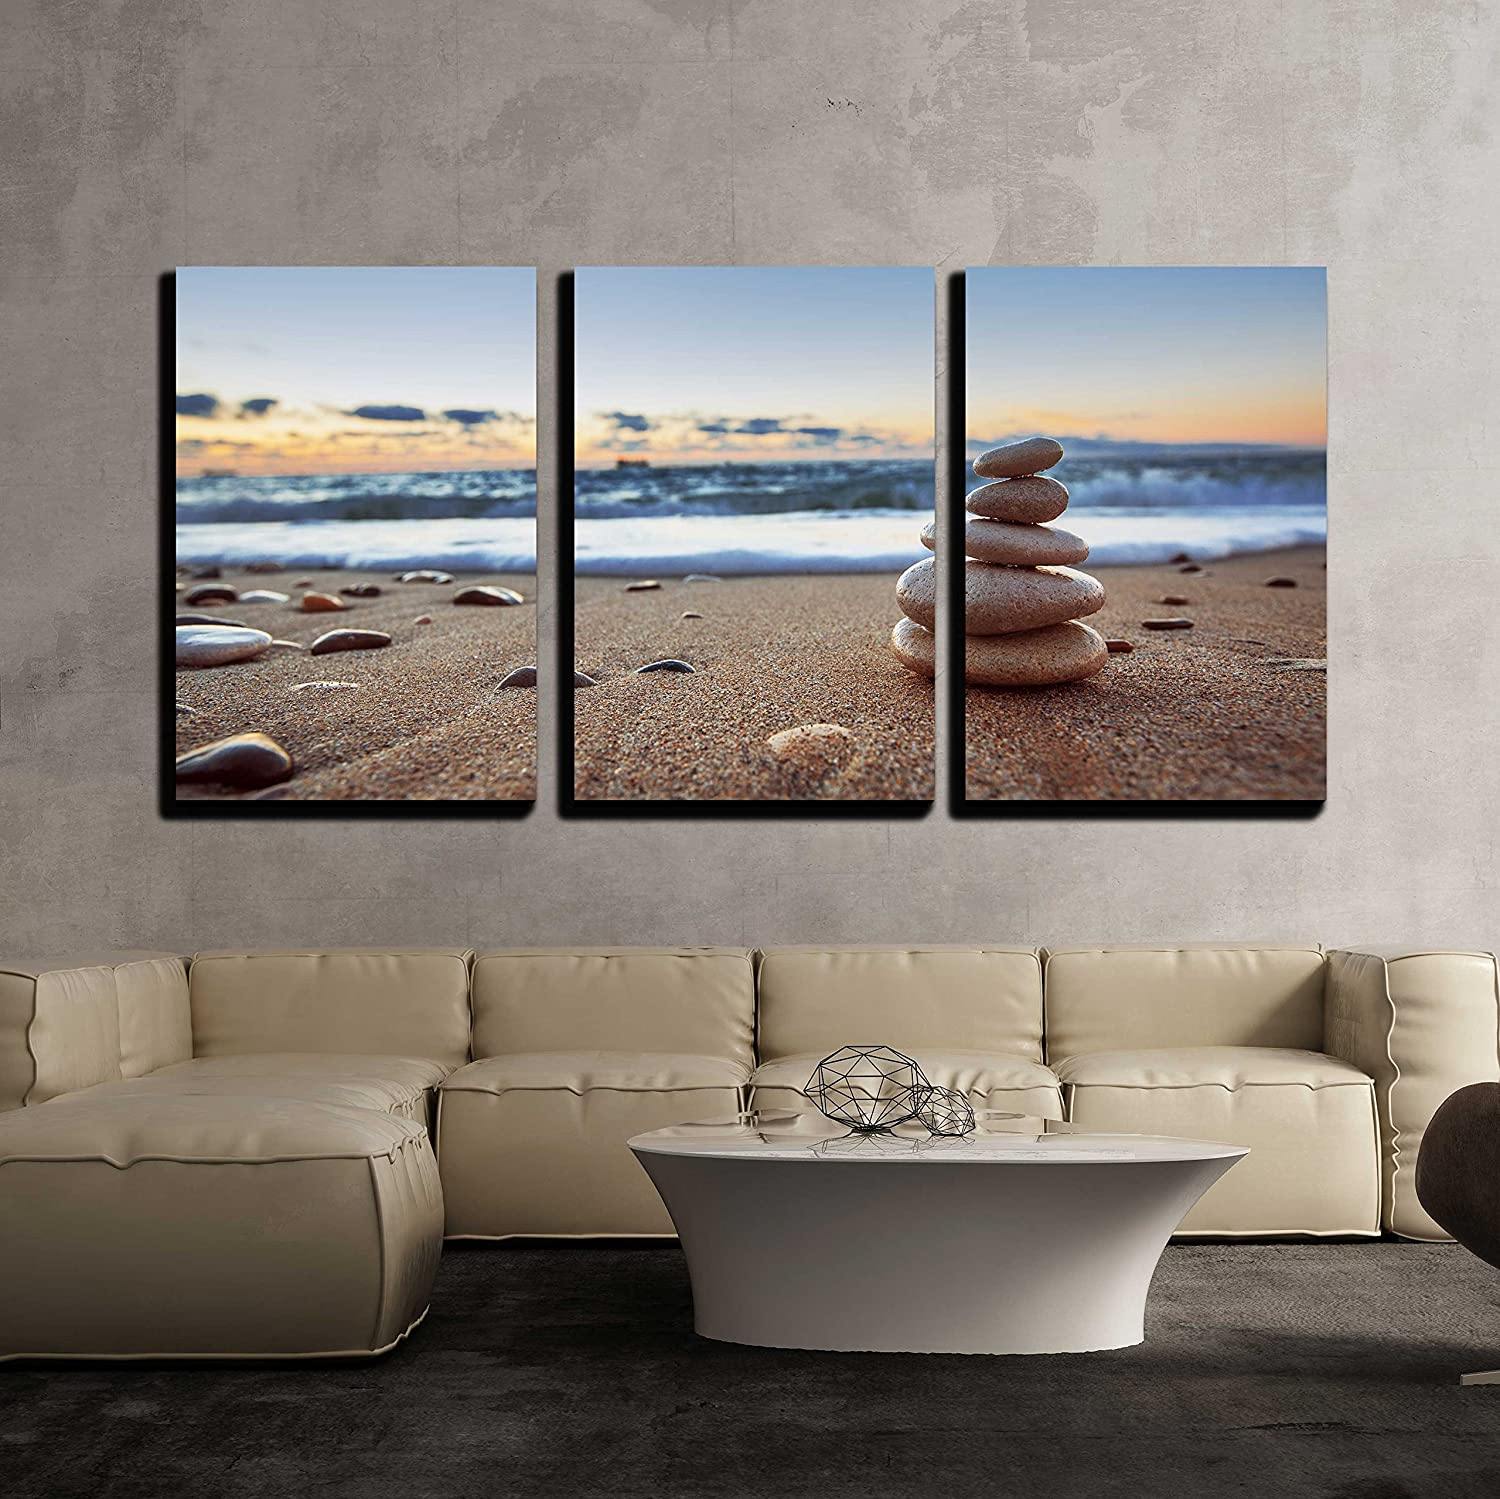 Wonderful Handicraft, With a Professional Touch, Stones Balance on Beach Sunrise Shot x3 Panels